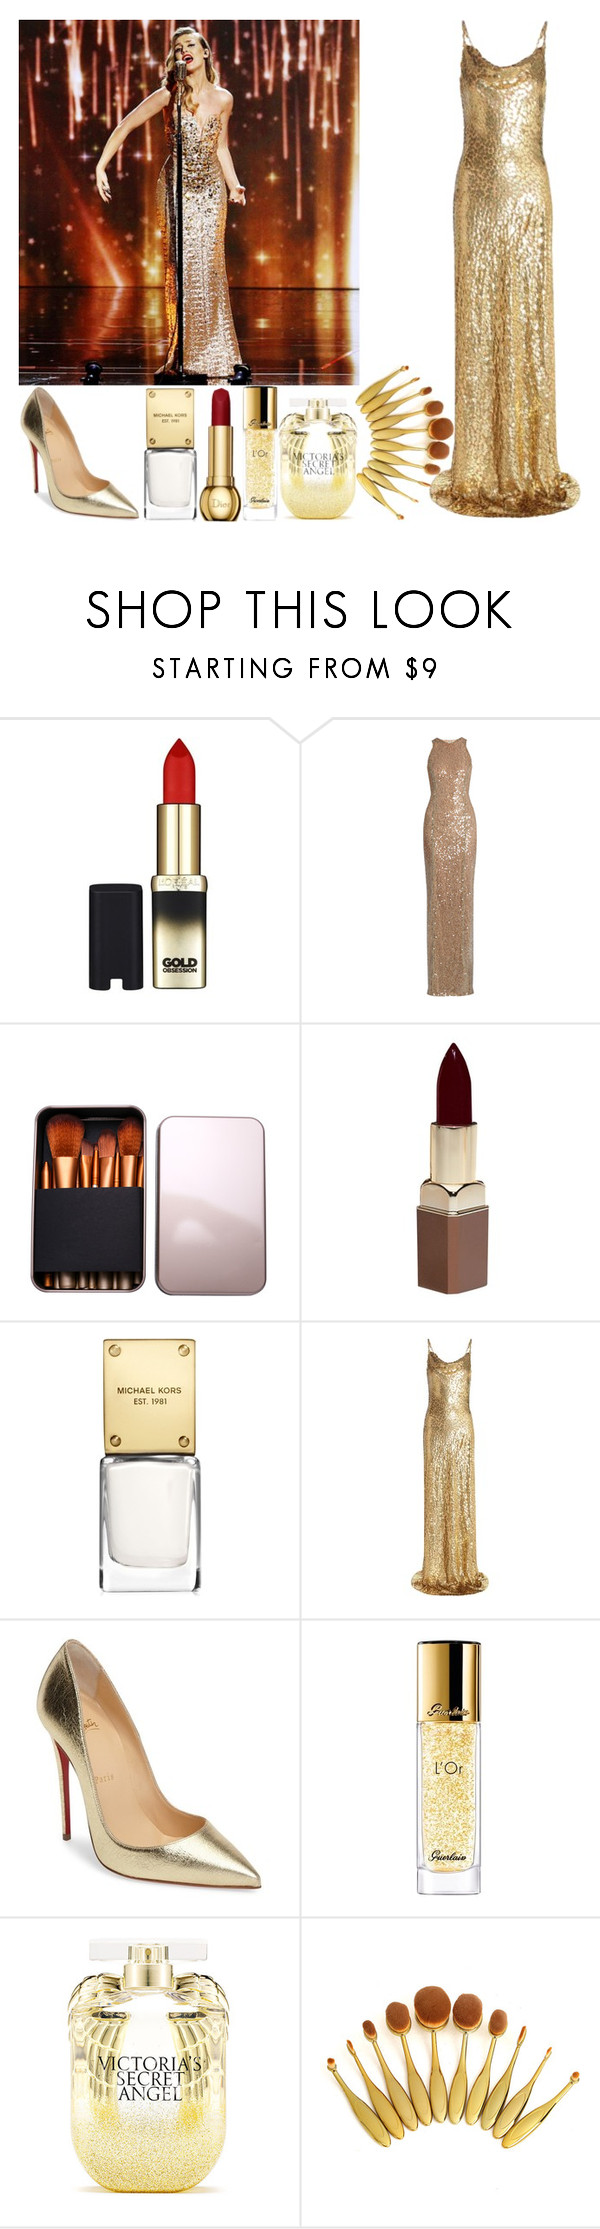 """""""With Perrie"""" by angelbrubisc ❤ liked on Polyvore featuring L'Oréal Paris, Galvan, Fashion Fair, Michael Kors, Christian Louboutin, Guerlain and Victoria's Secret"""